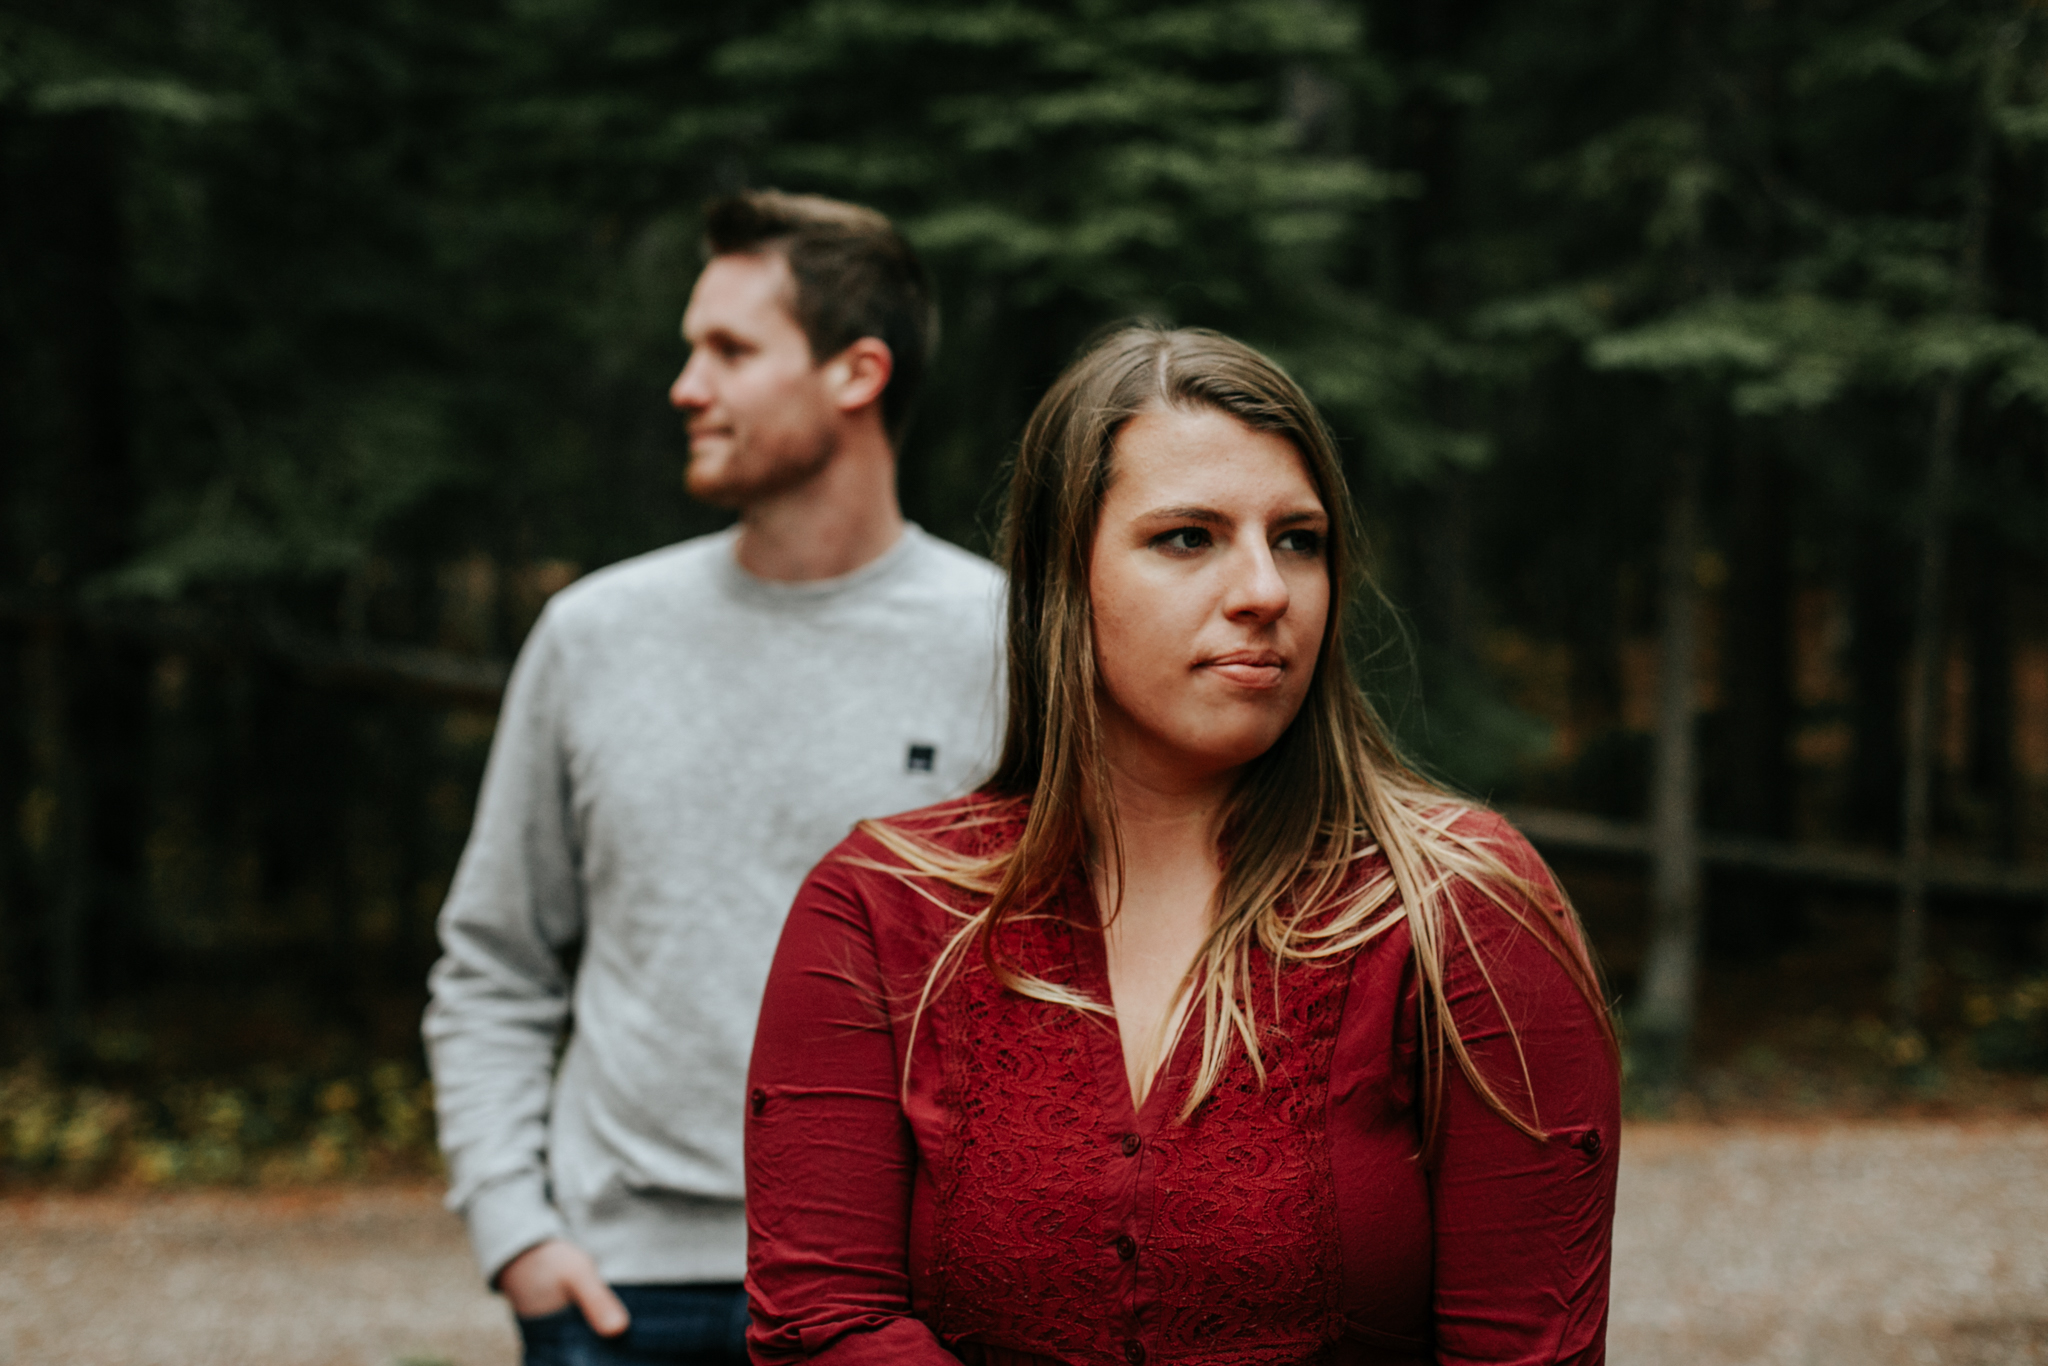 lethbridge-photographer-love-and-be-loved-photography-crowsnest-pass-engagement-andi-philip-picture-image-photo--51.jpg